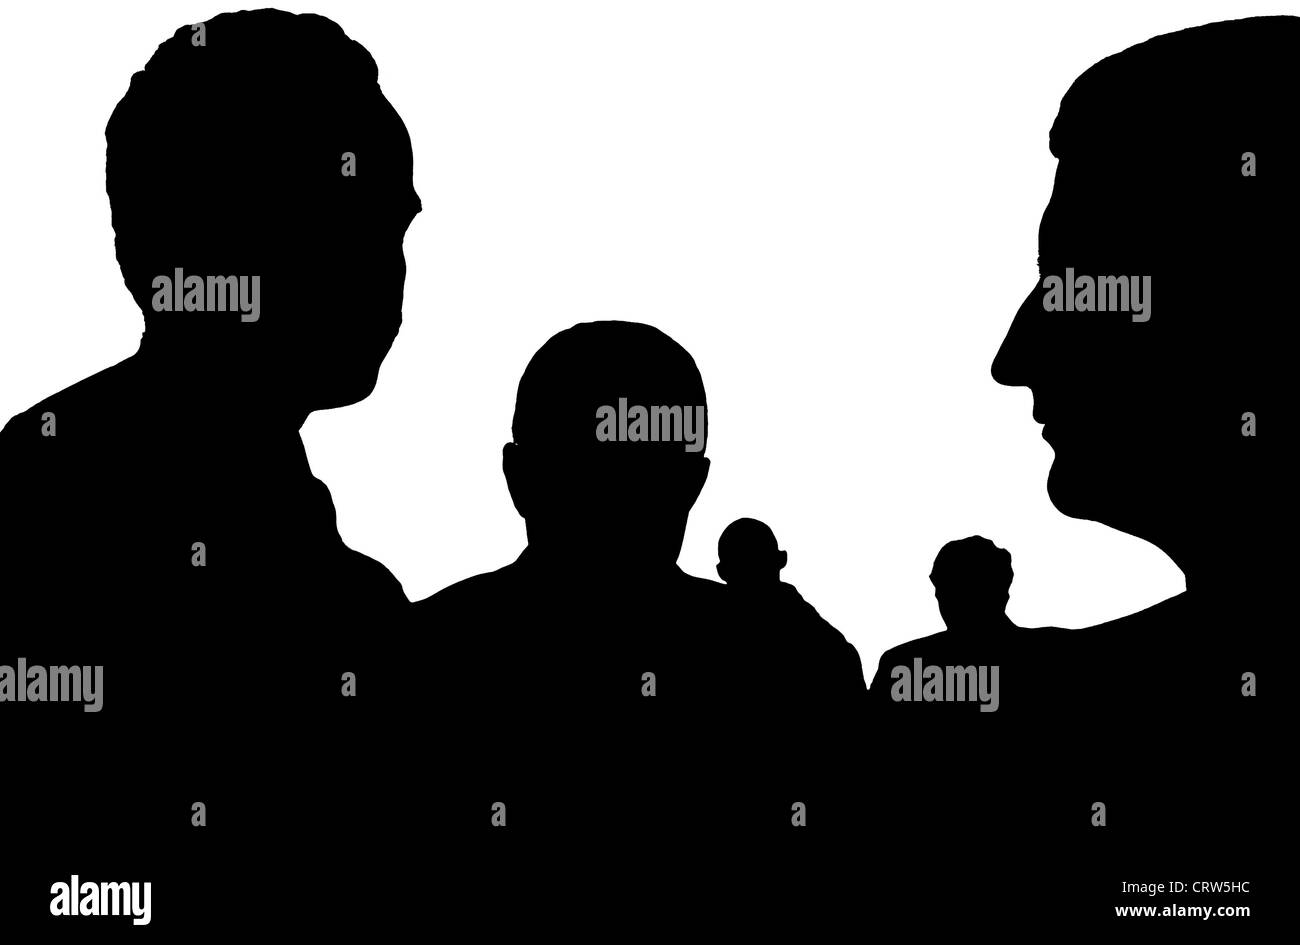 incognito persons - Stock Image